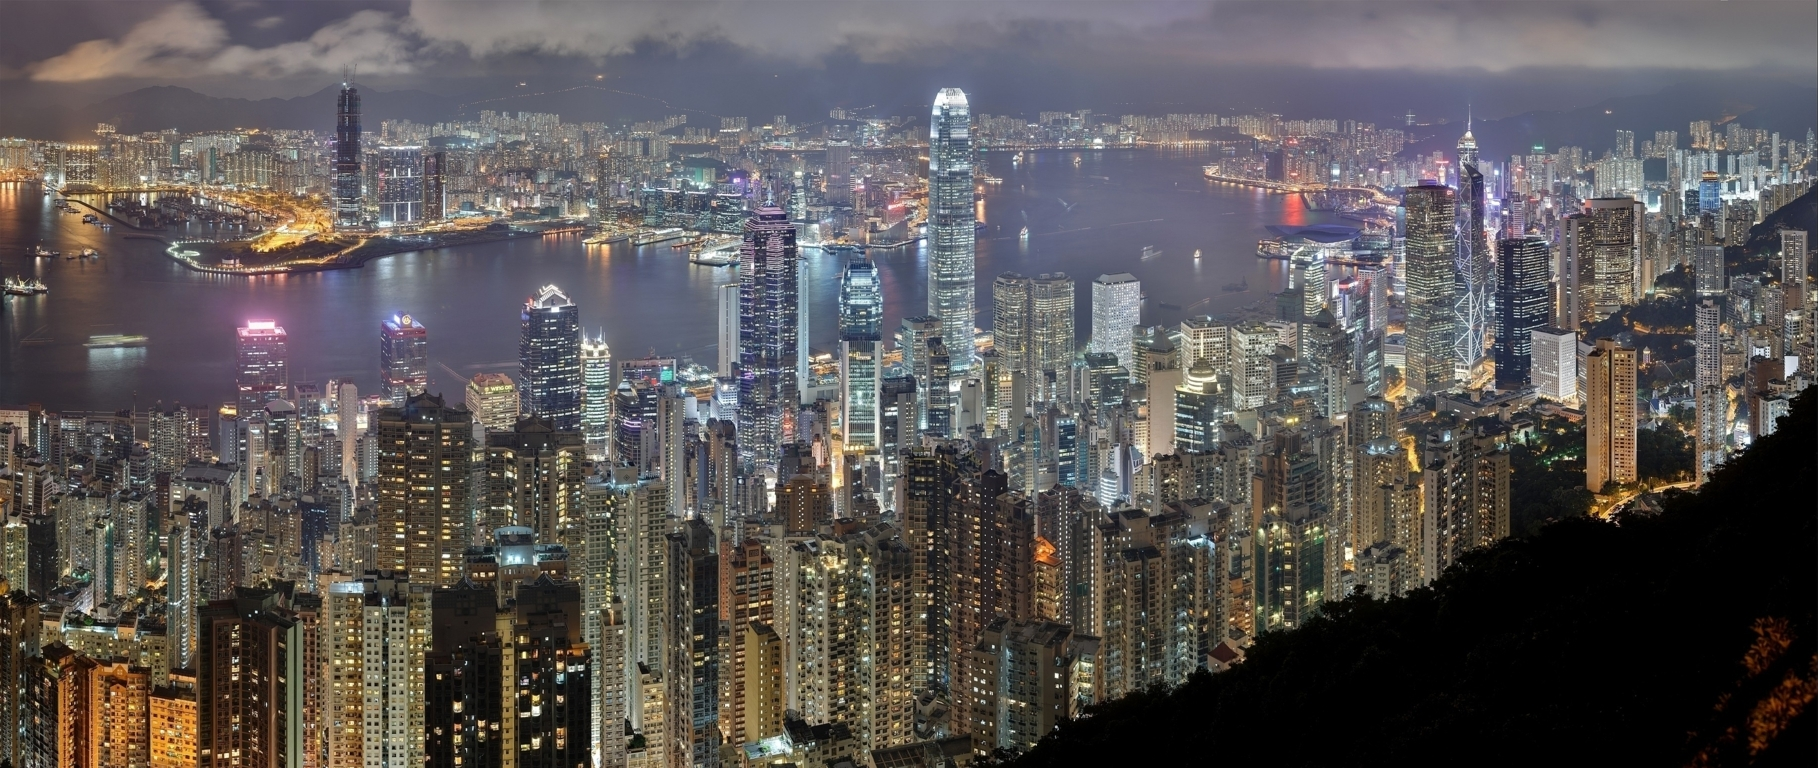 Man Made Hong Kong China Reflection Twilight Architecture Building Cityscape Hd Background Image Cities